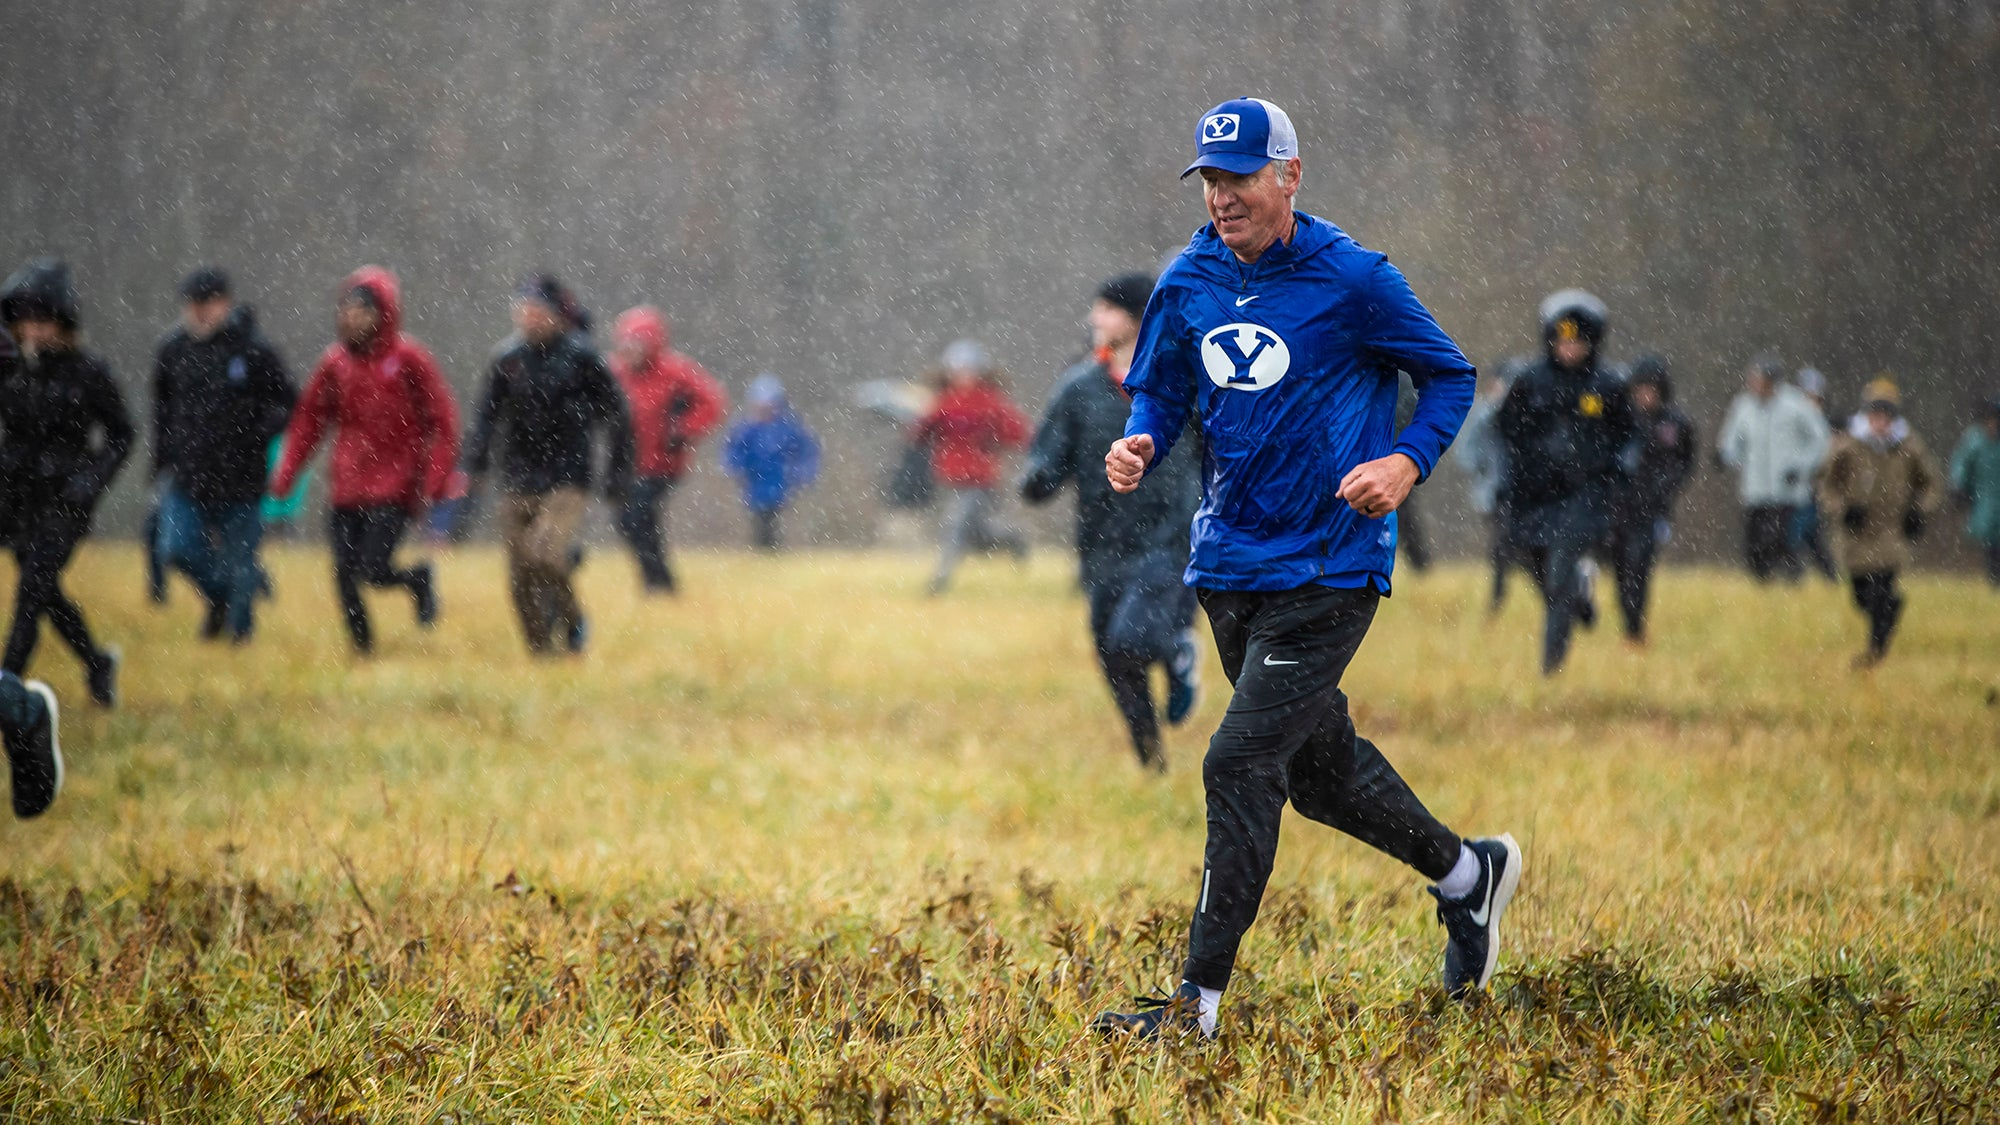 Ed Eyestone at NCAA XC Championships